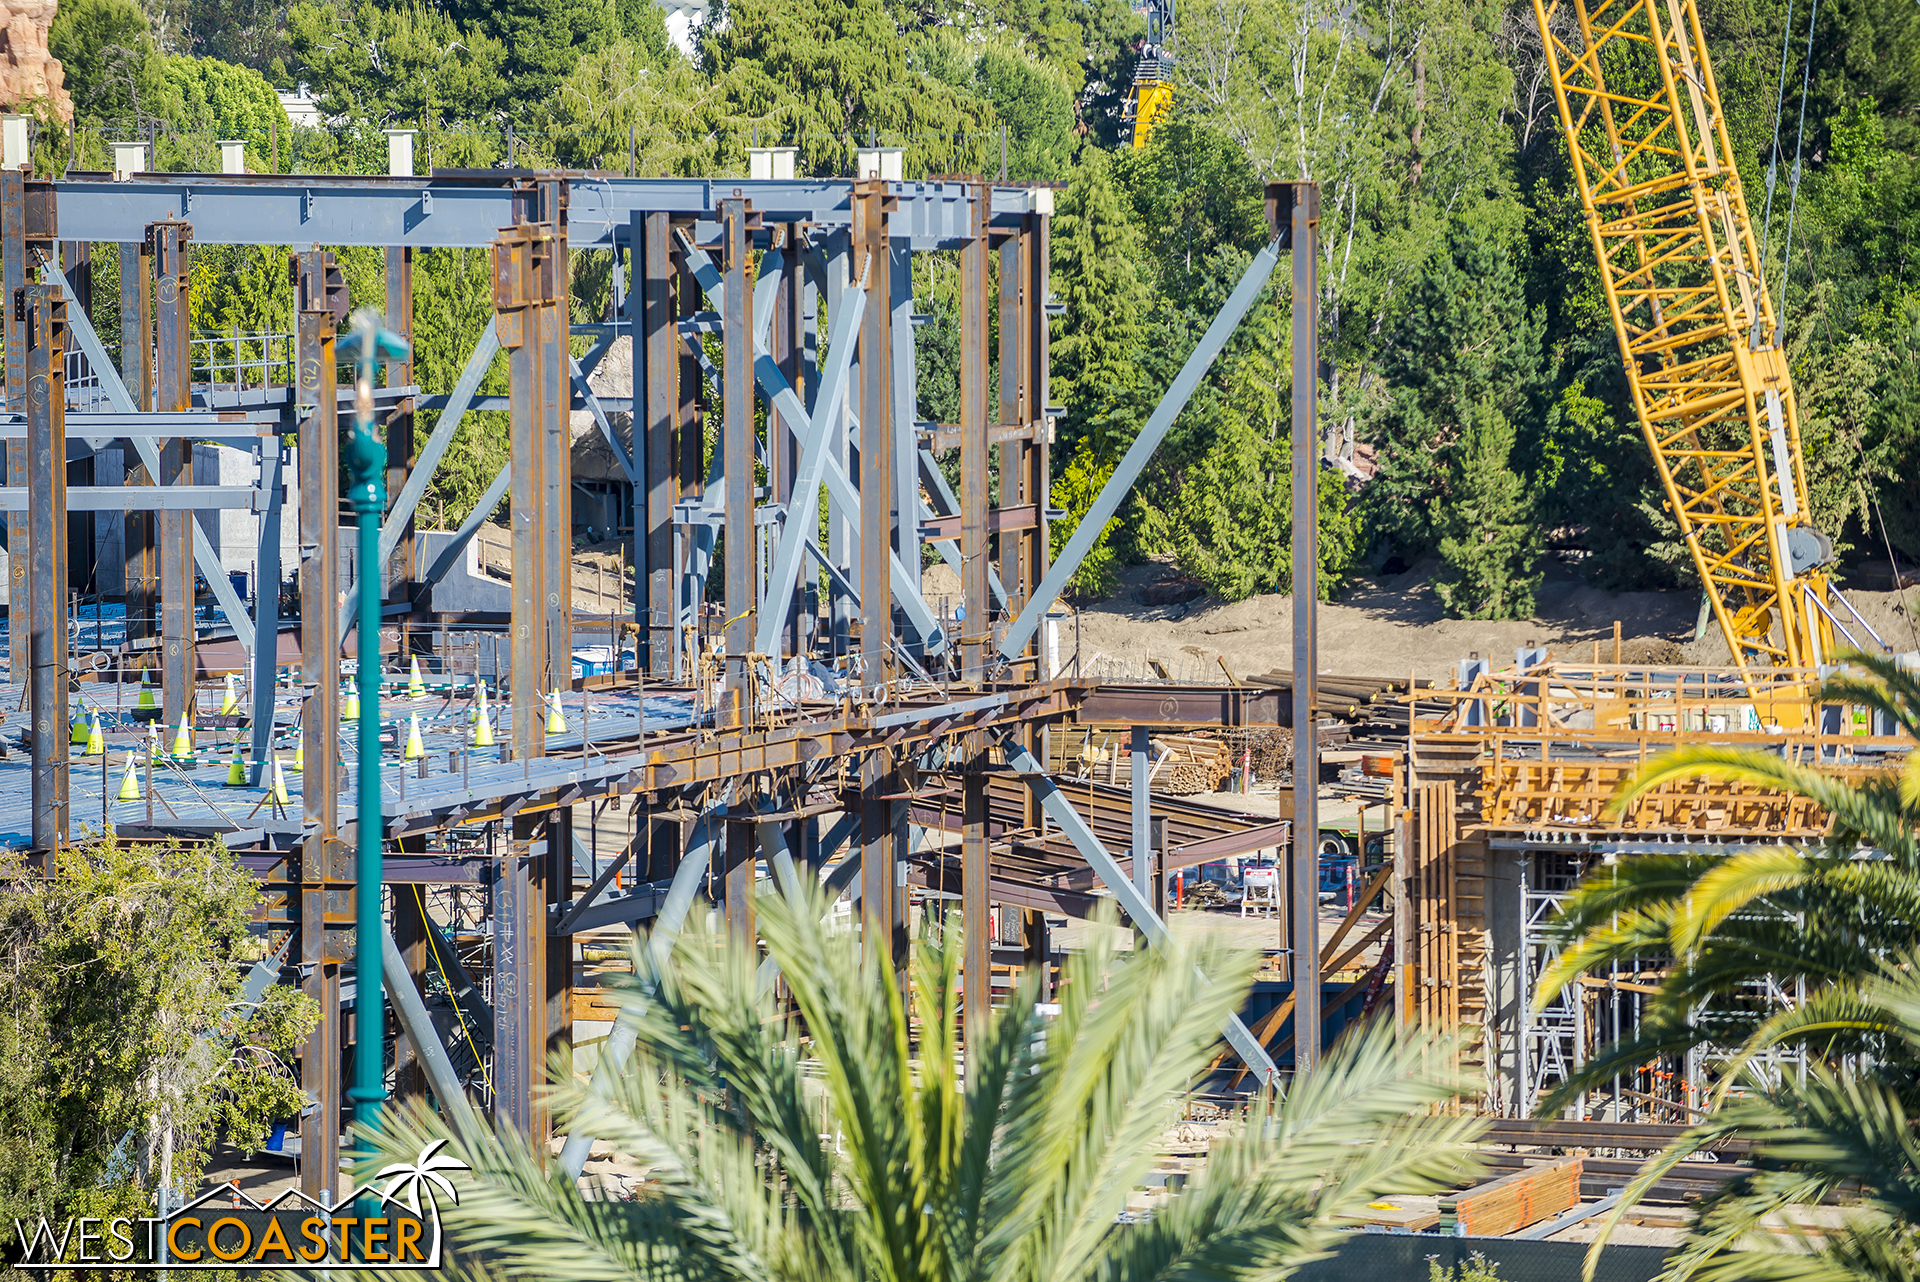 The roof framing for this part hasn't gone up yet at the Cursed Order attraction.